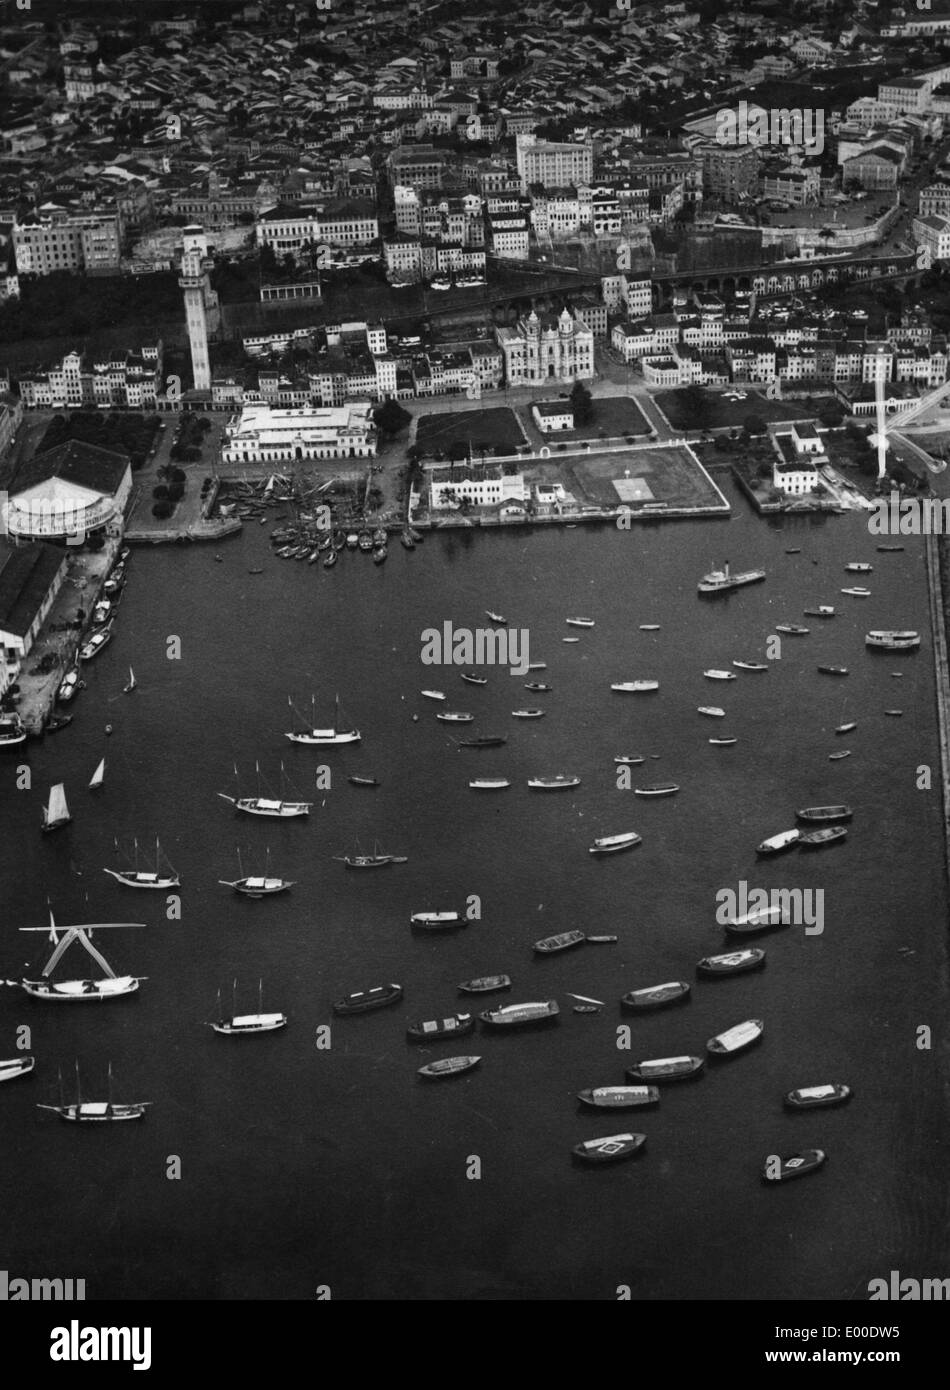 The port of Salvador da Bahia on the brasilian coast, 1934 - Stock Image